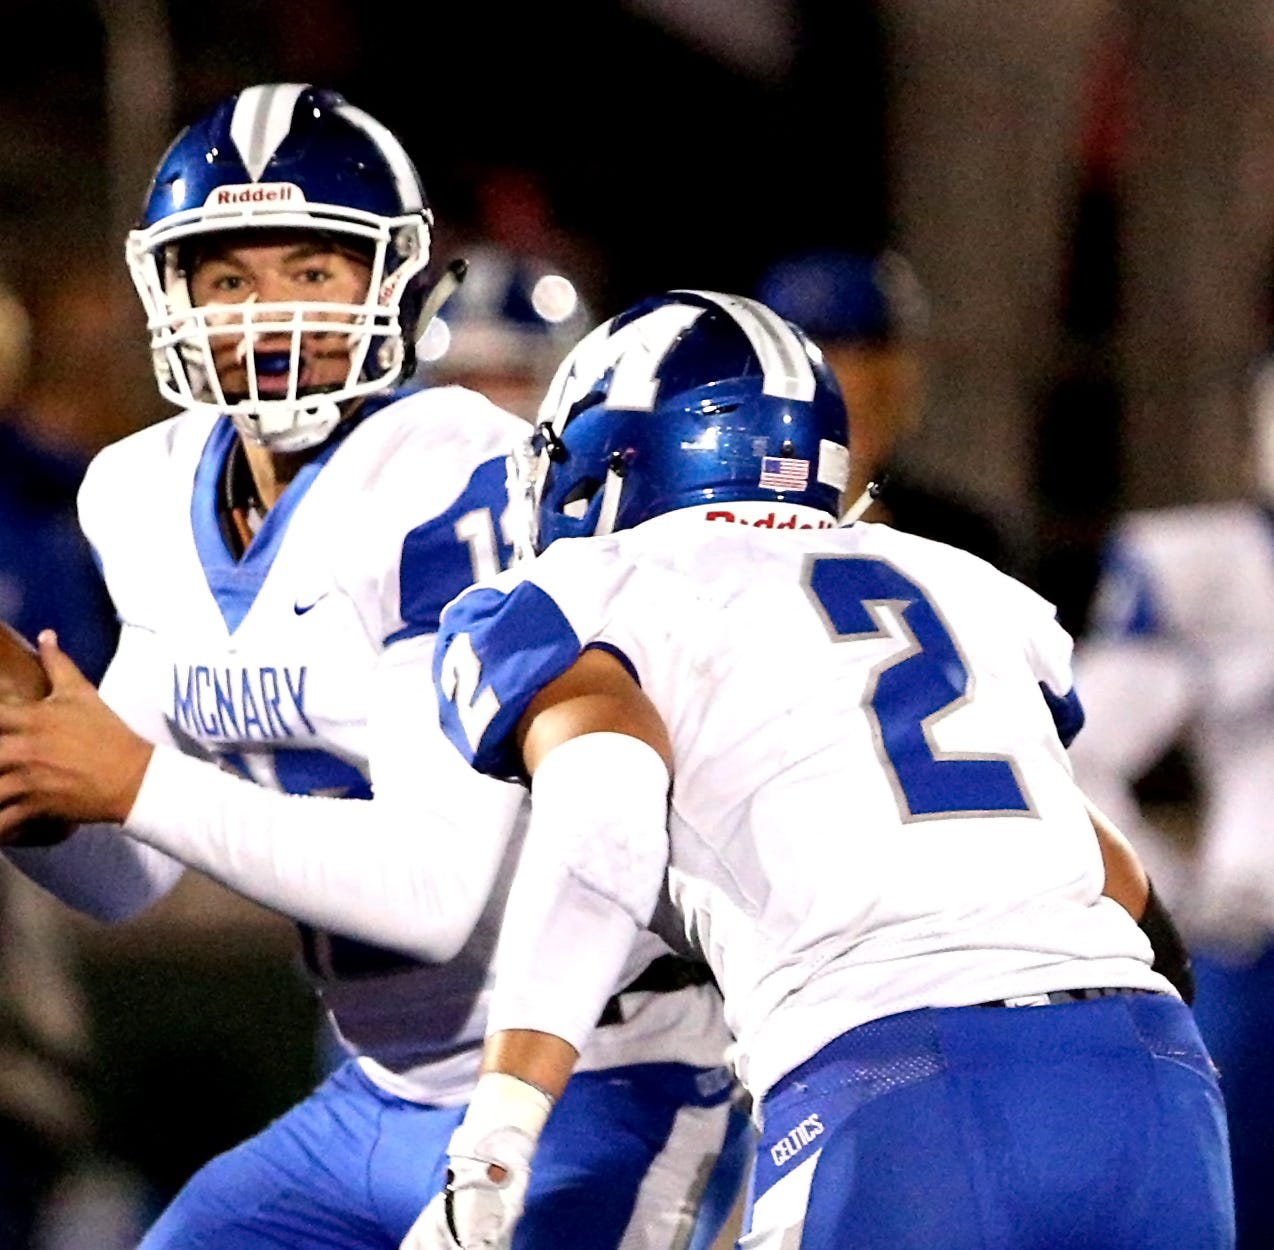 McNary punctuates comeback season with huge win at West Salem